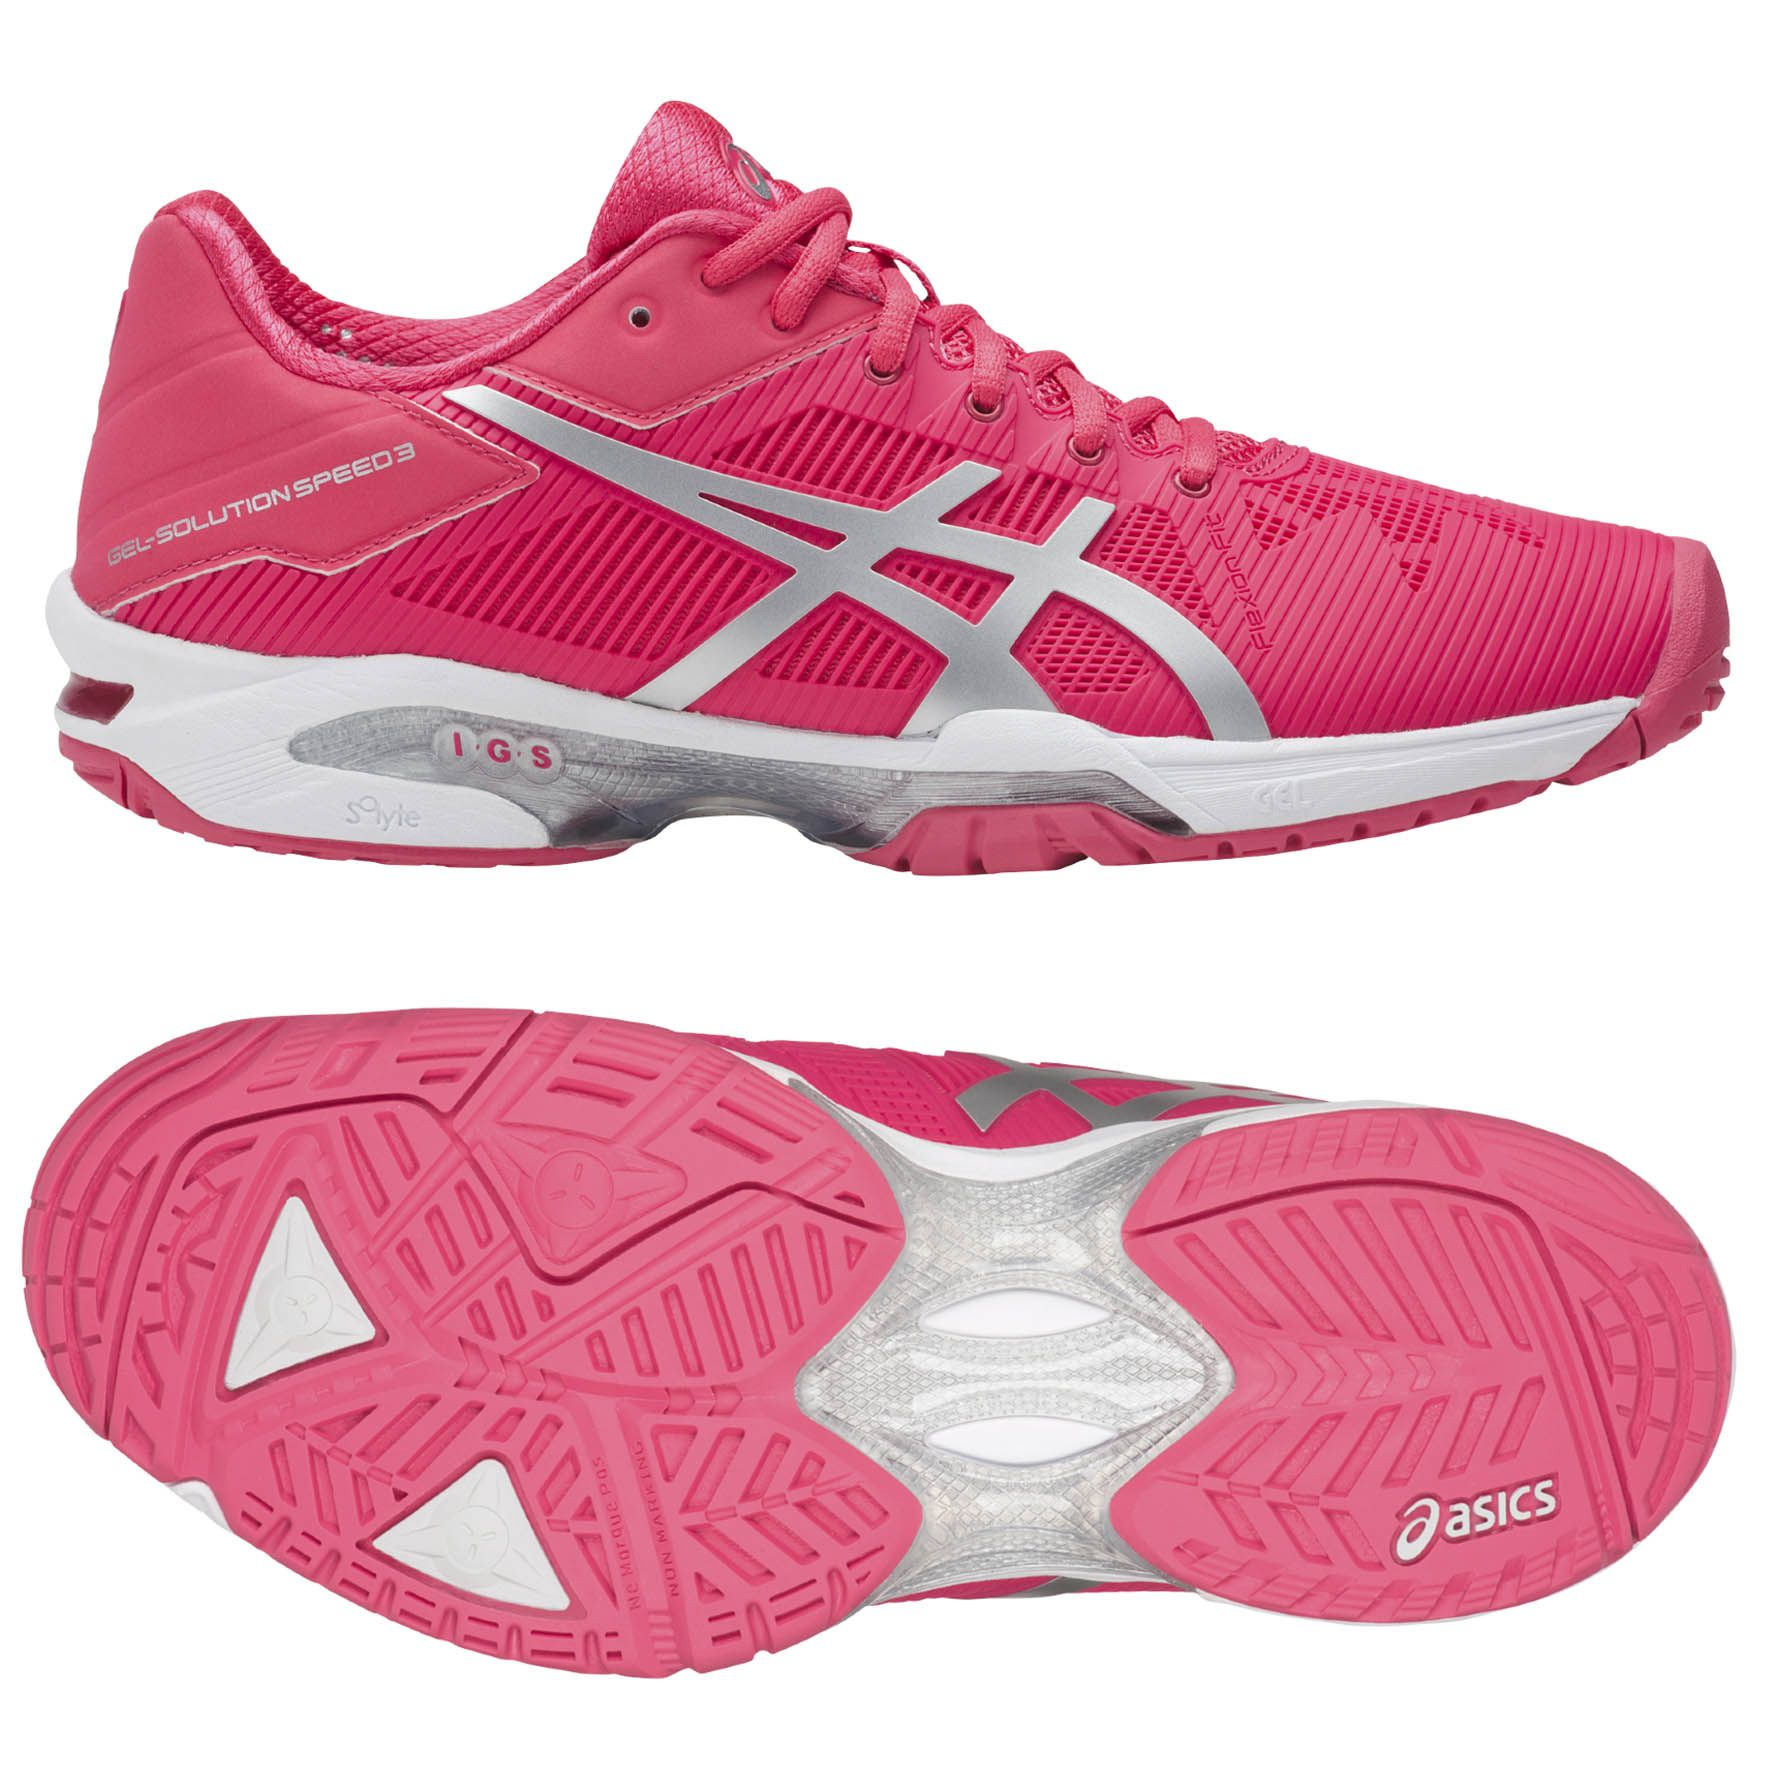 Asics Support Ladies Running Shoes